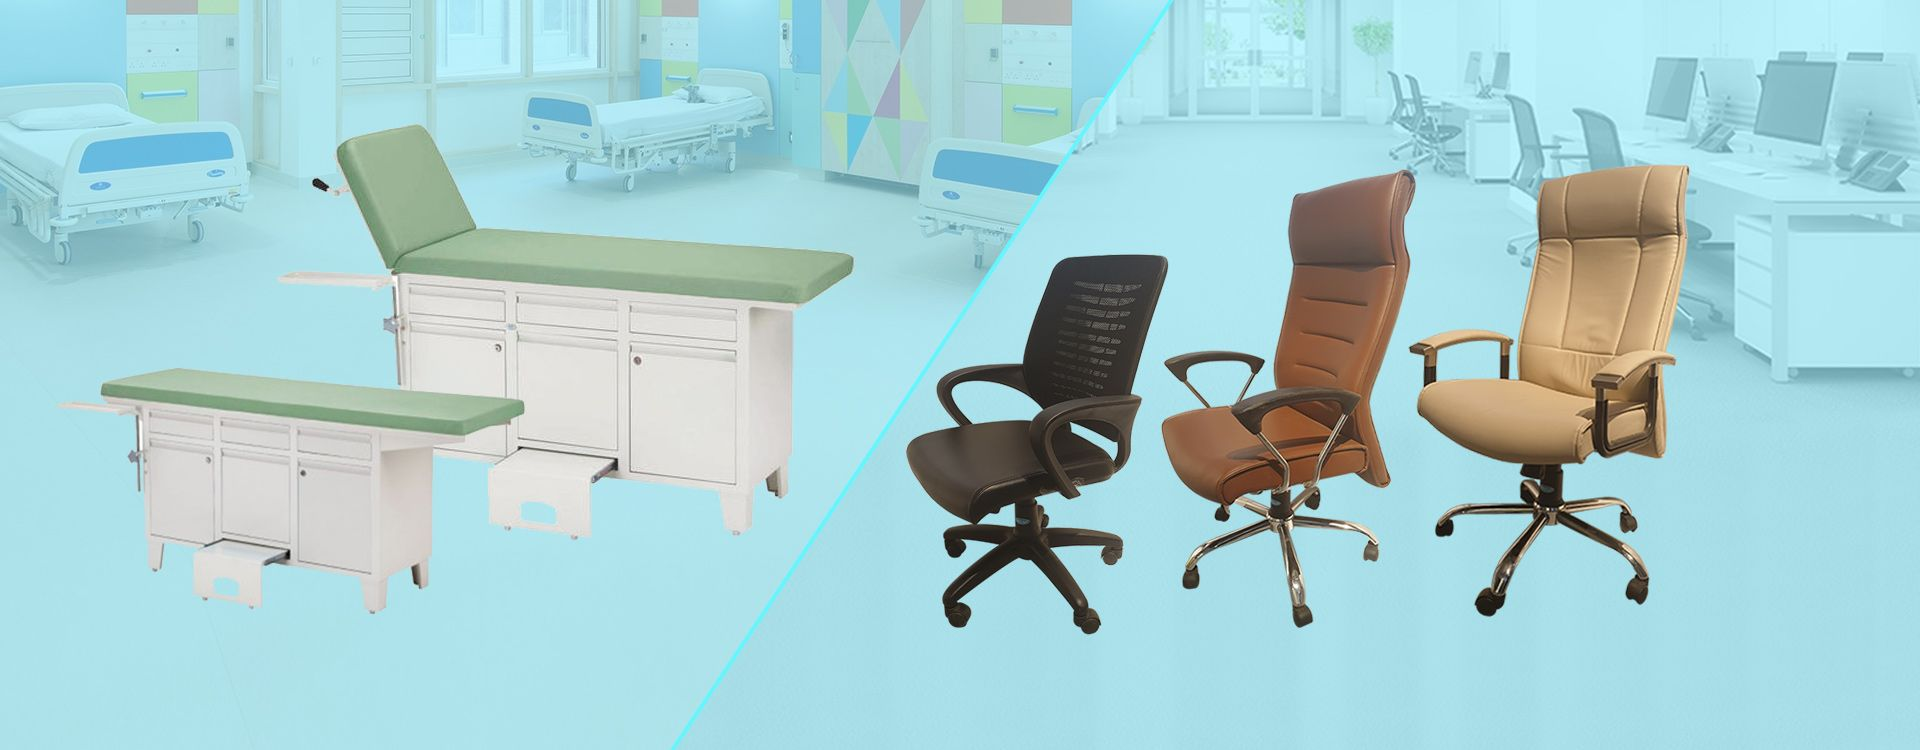 hospital furniture manufacturer